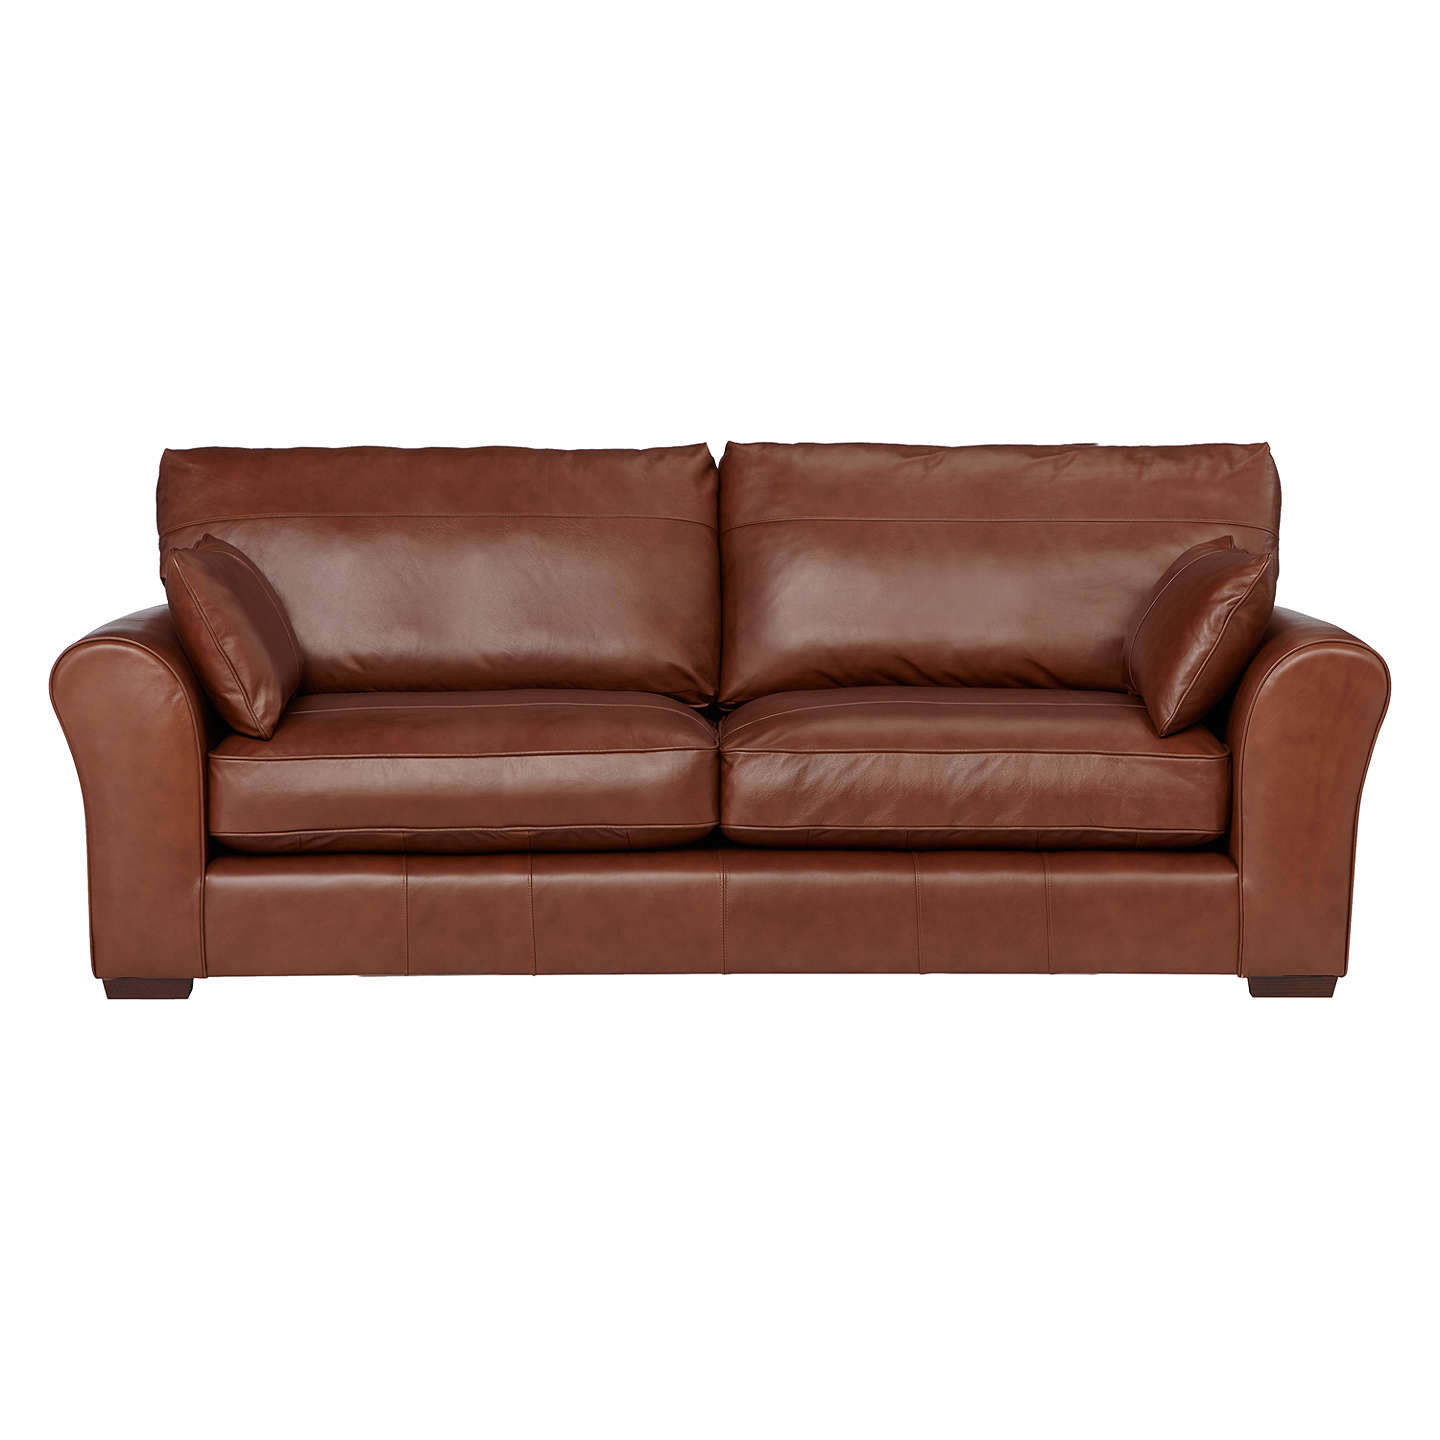 Four seater leather sofa sofa 4 seater leather with for Leather sofa 7 seater